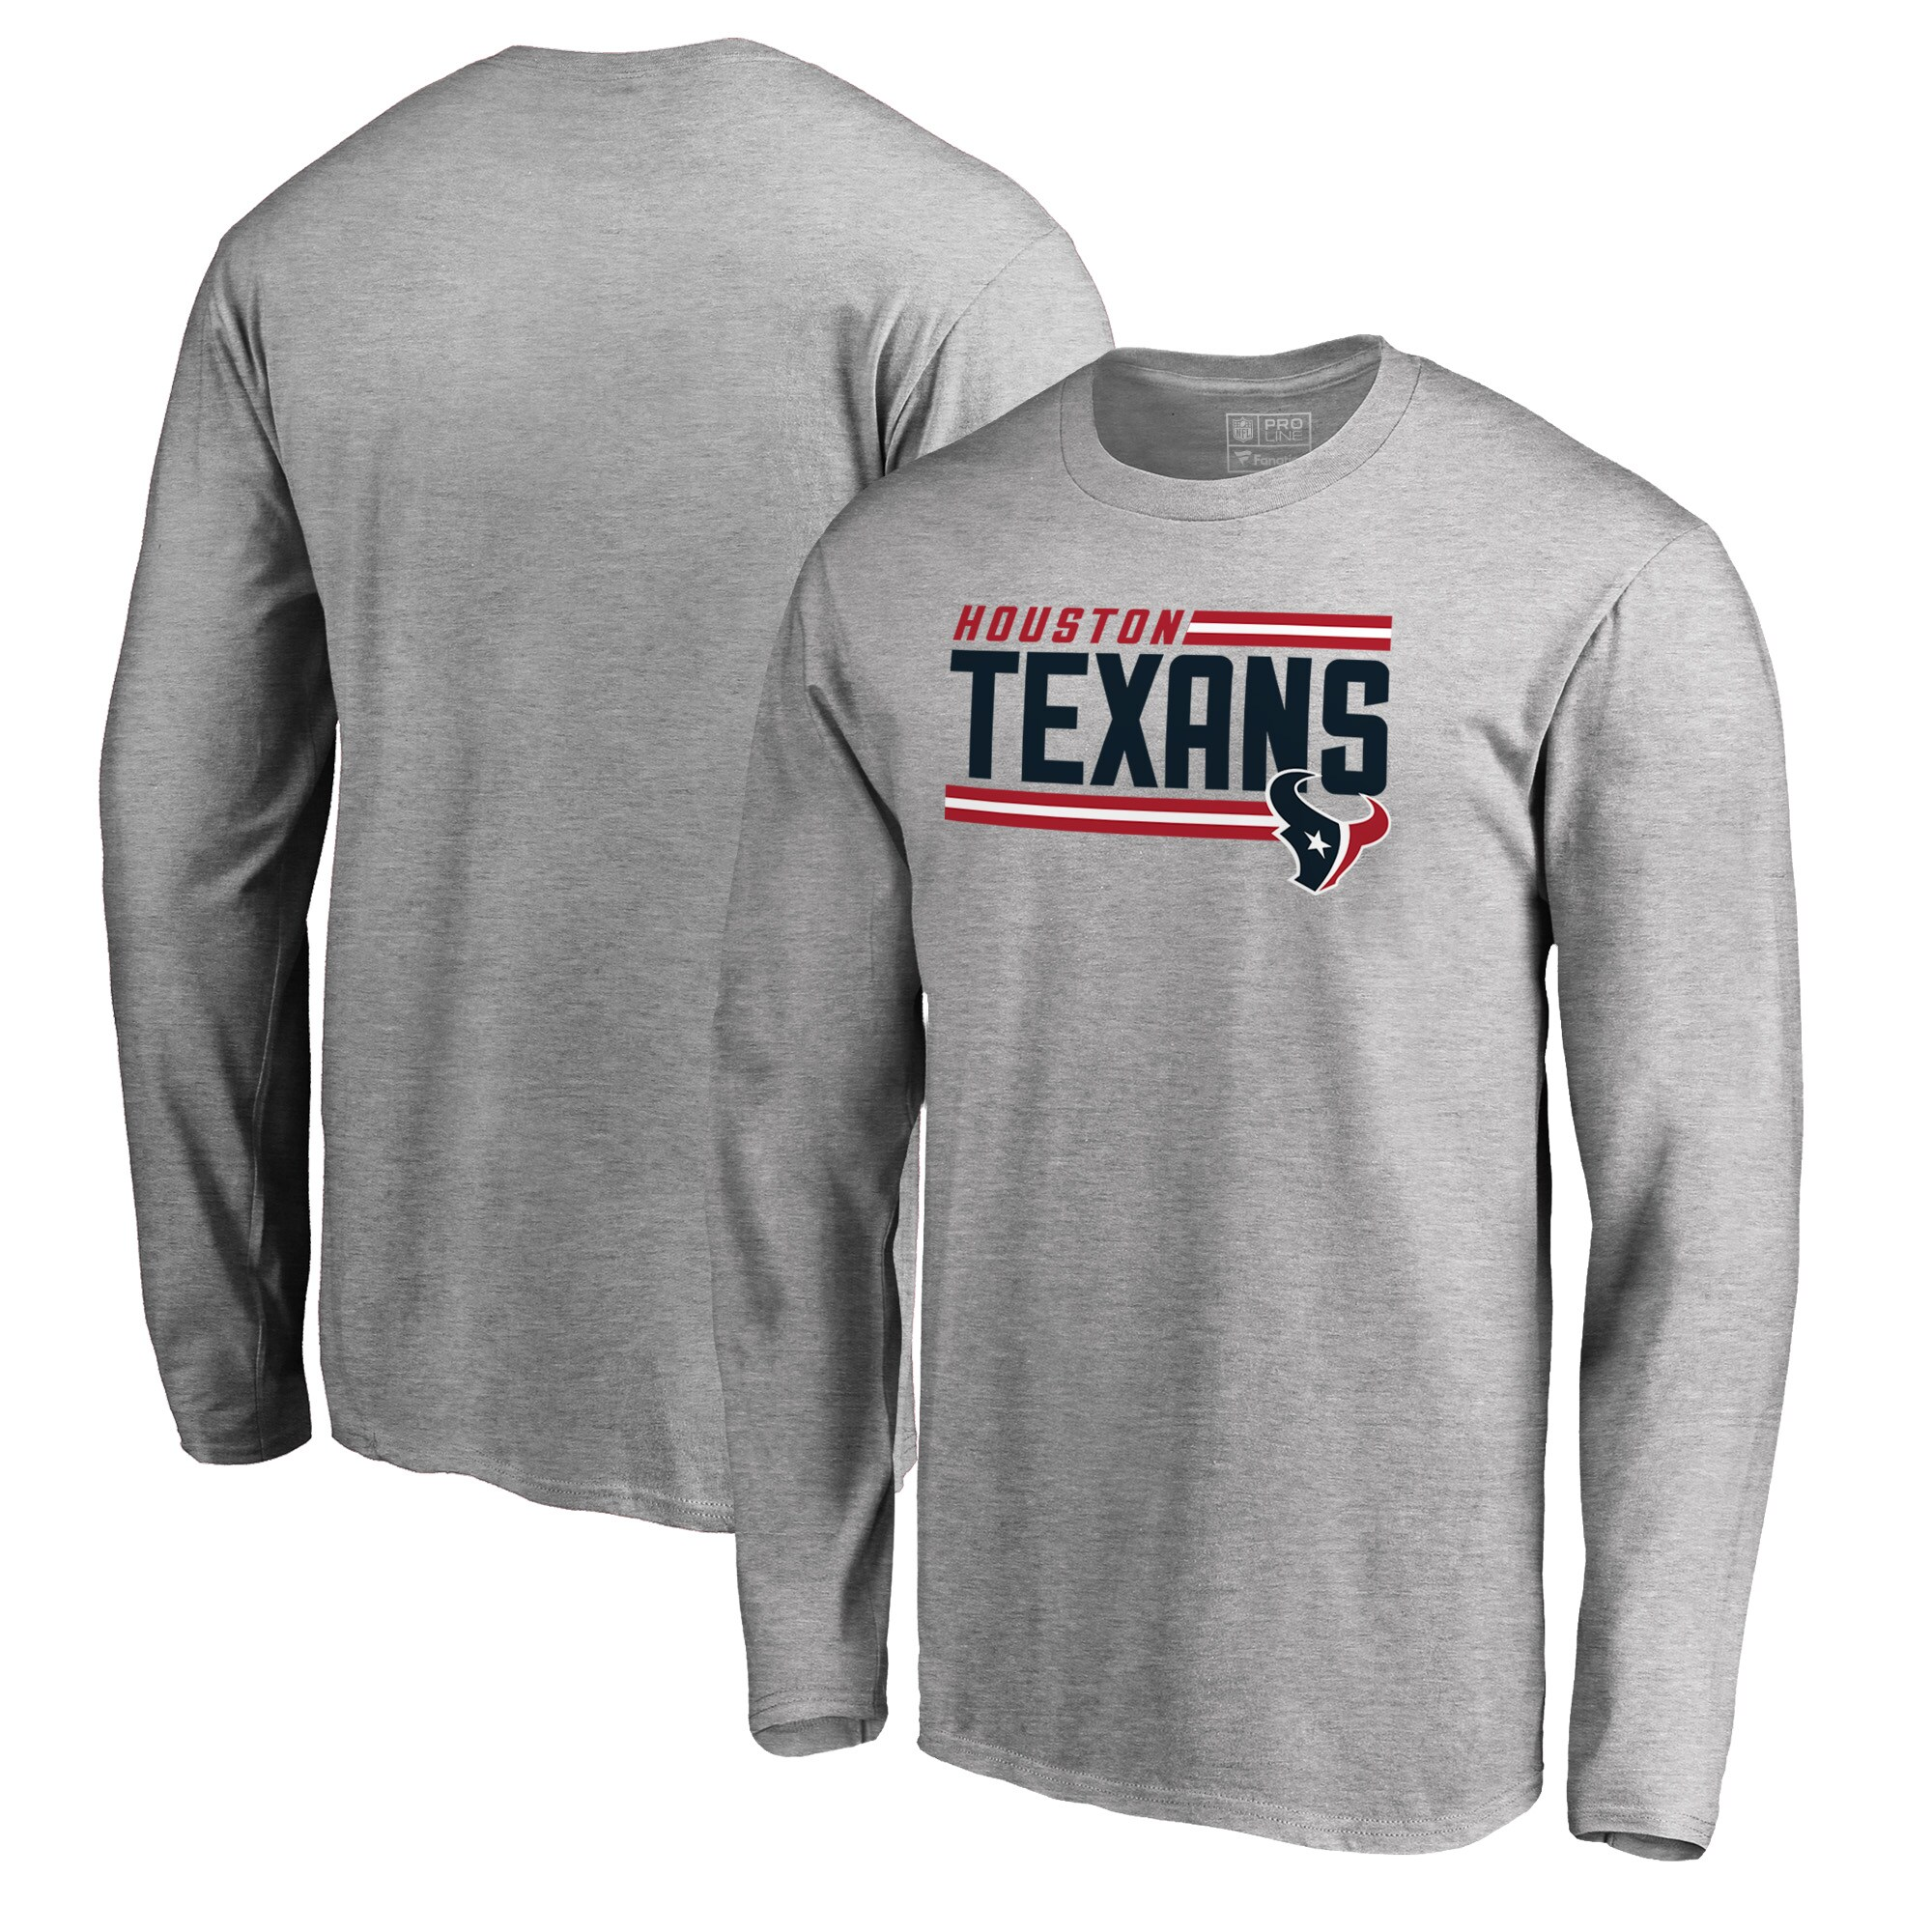 Houston Texans NFL Pro Line by Fanatics Branded Iconic Collection Big and Tall On Side Stripe Long Sleeve T-Shirt - Ash